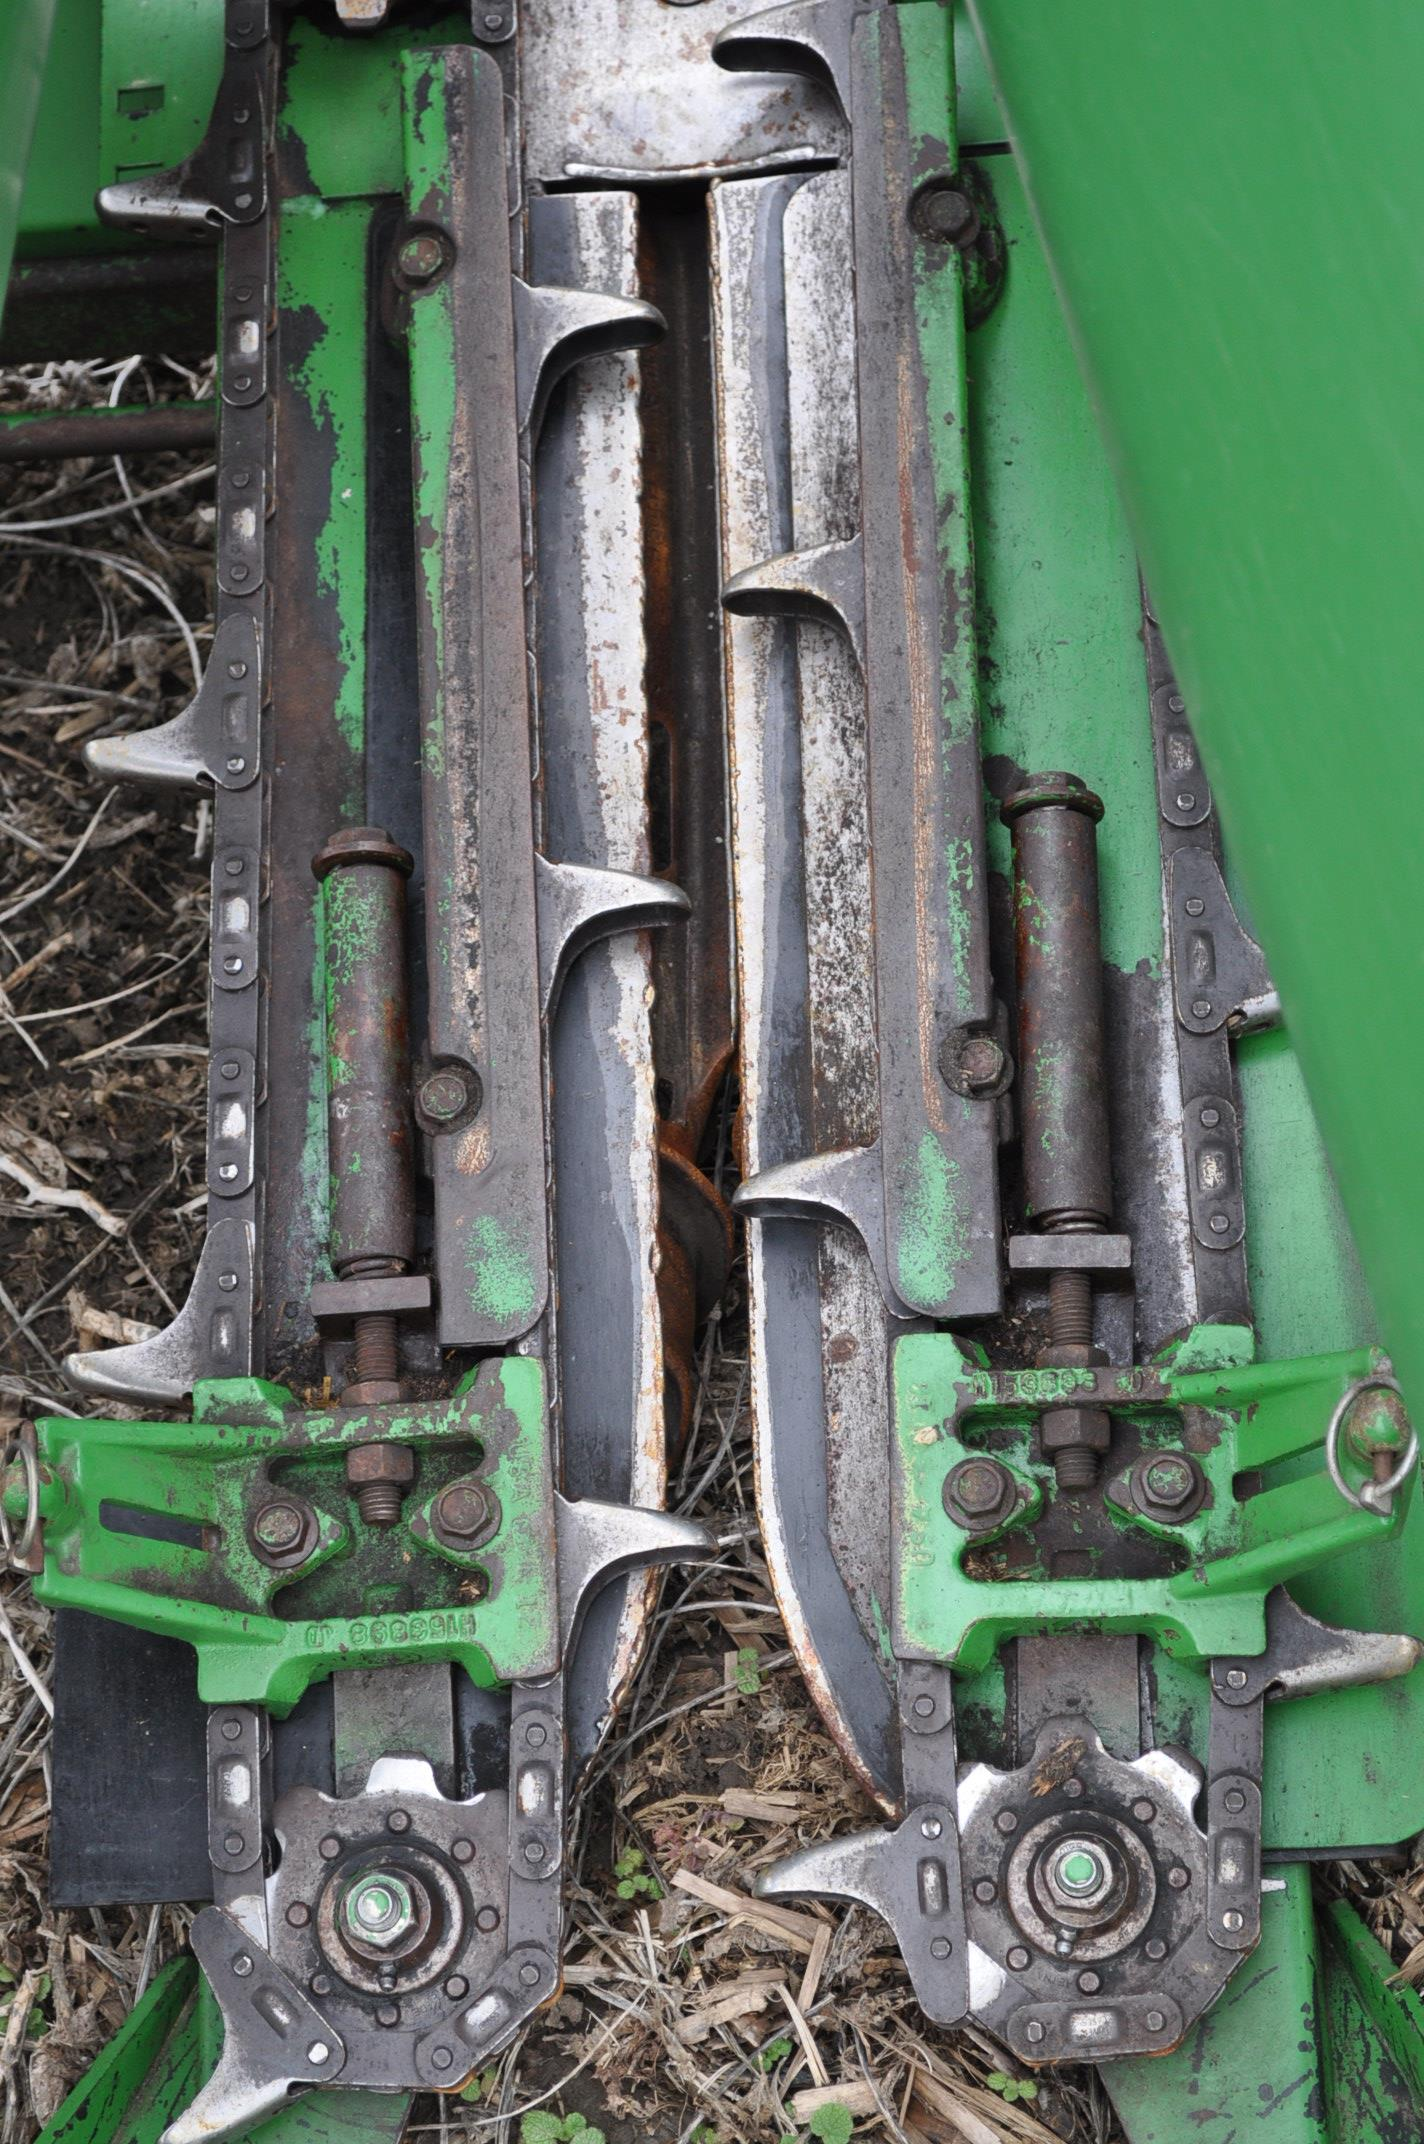 John Deere 693 corn head, poly, fluted rolls, hyd deck plates, pto shafts, SN 710815 - Image 6 of 14